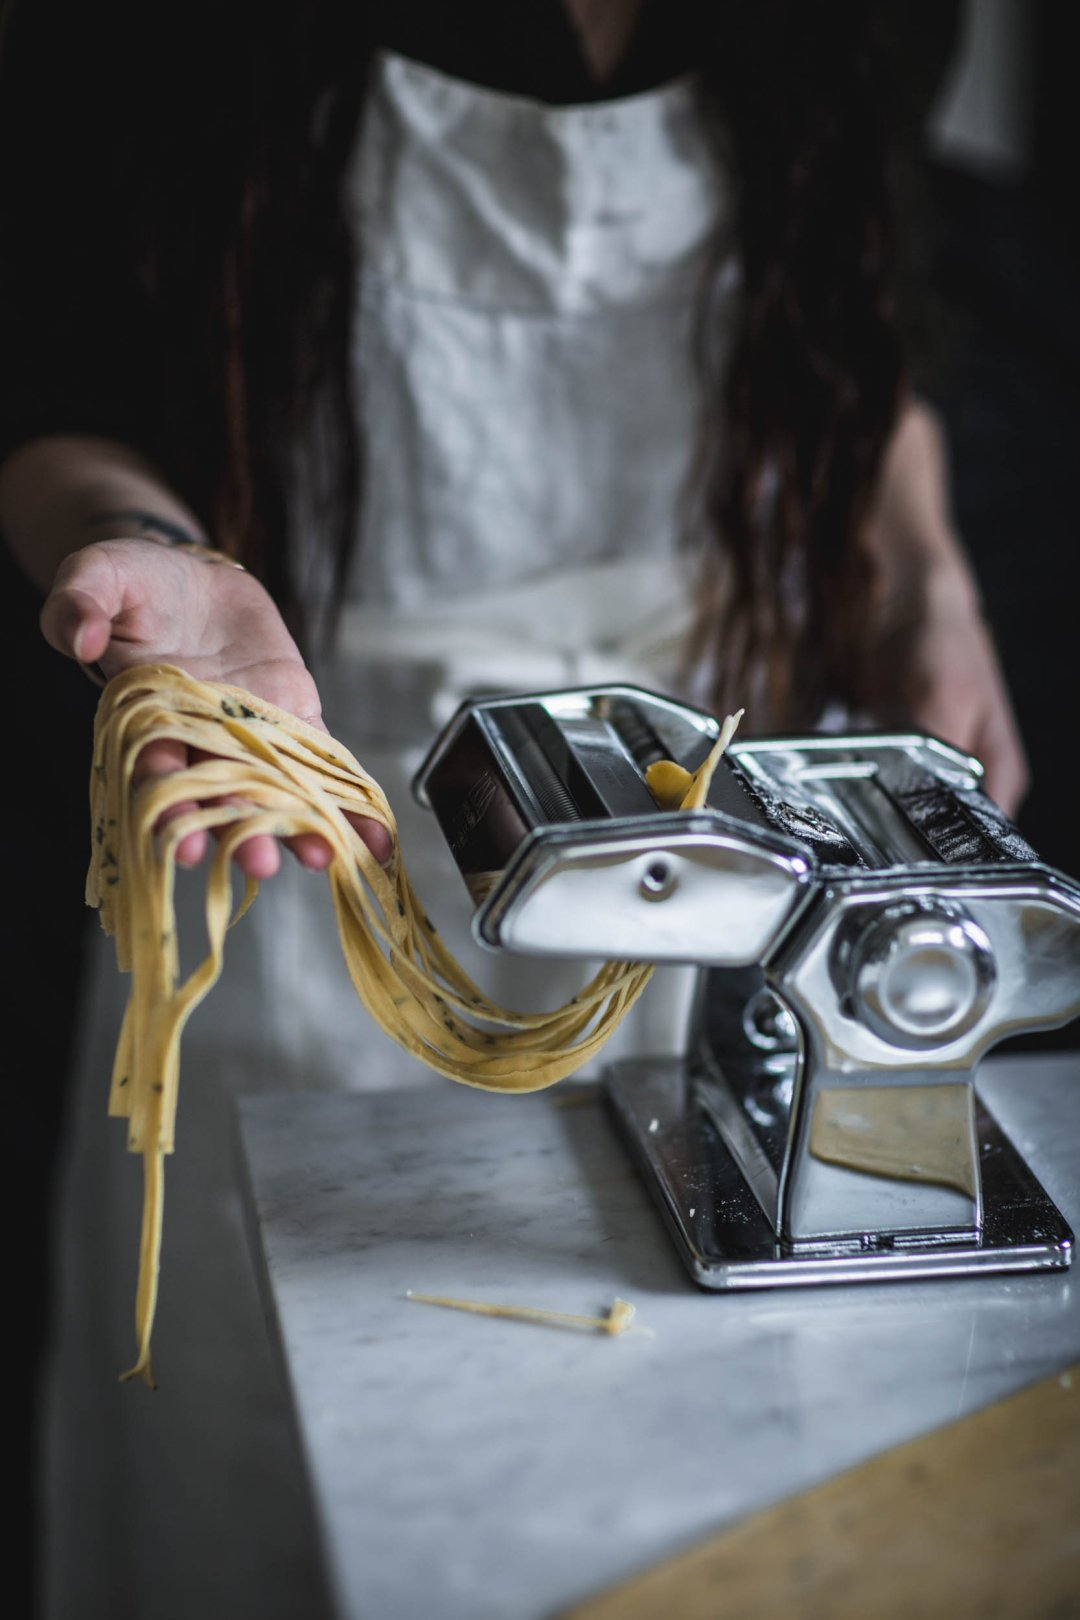 a woman catches fresh linguine coming out of a pasta maker